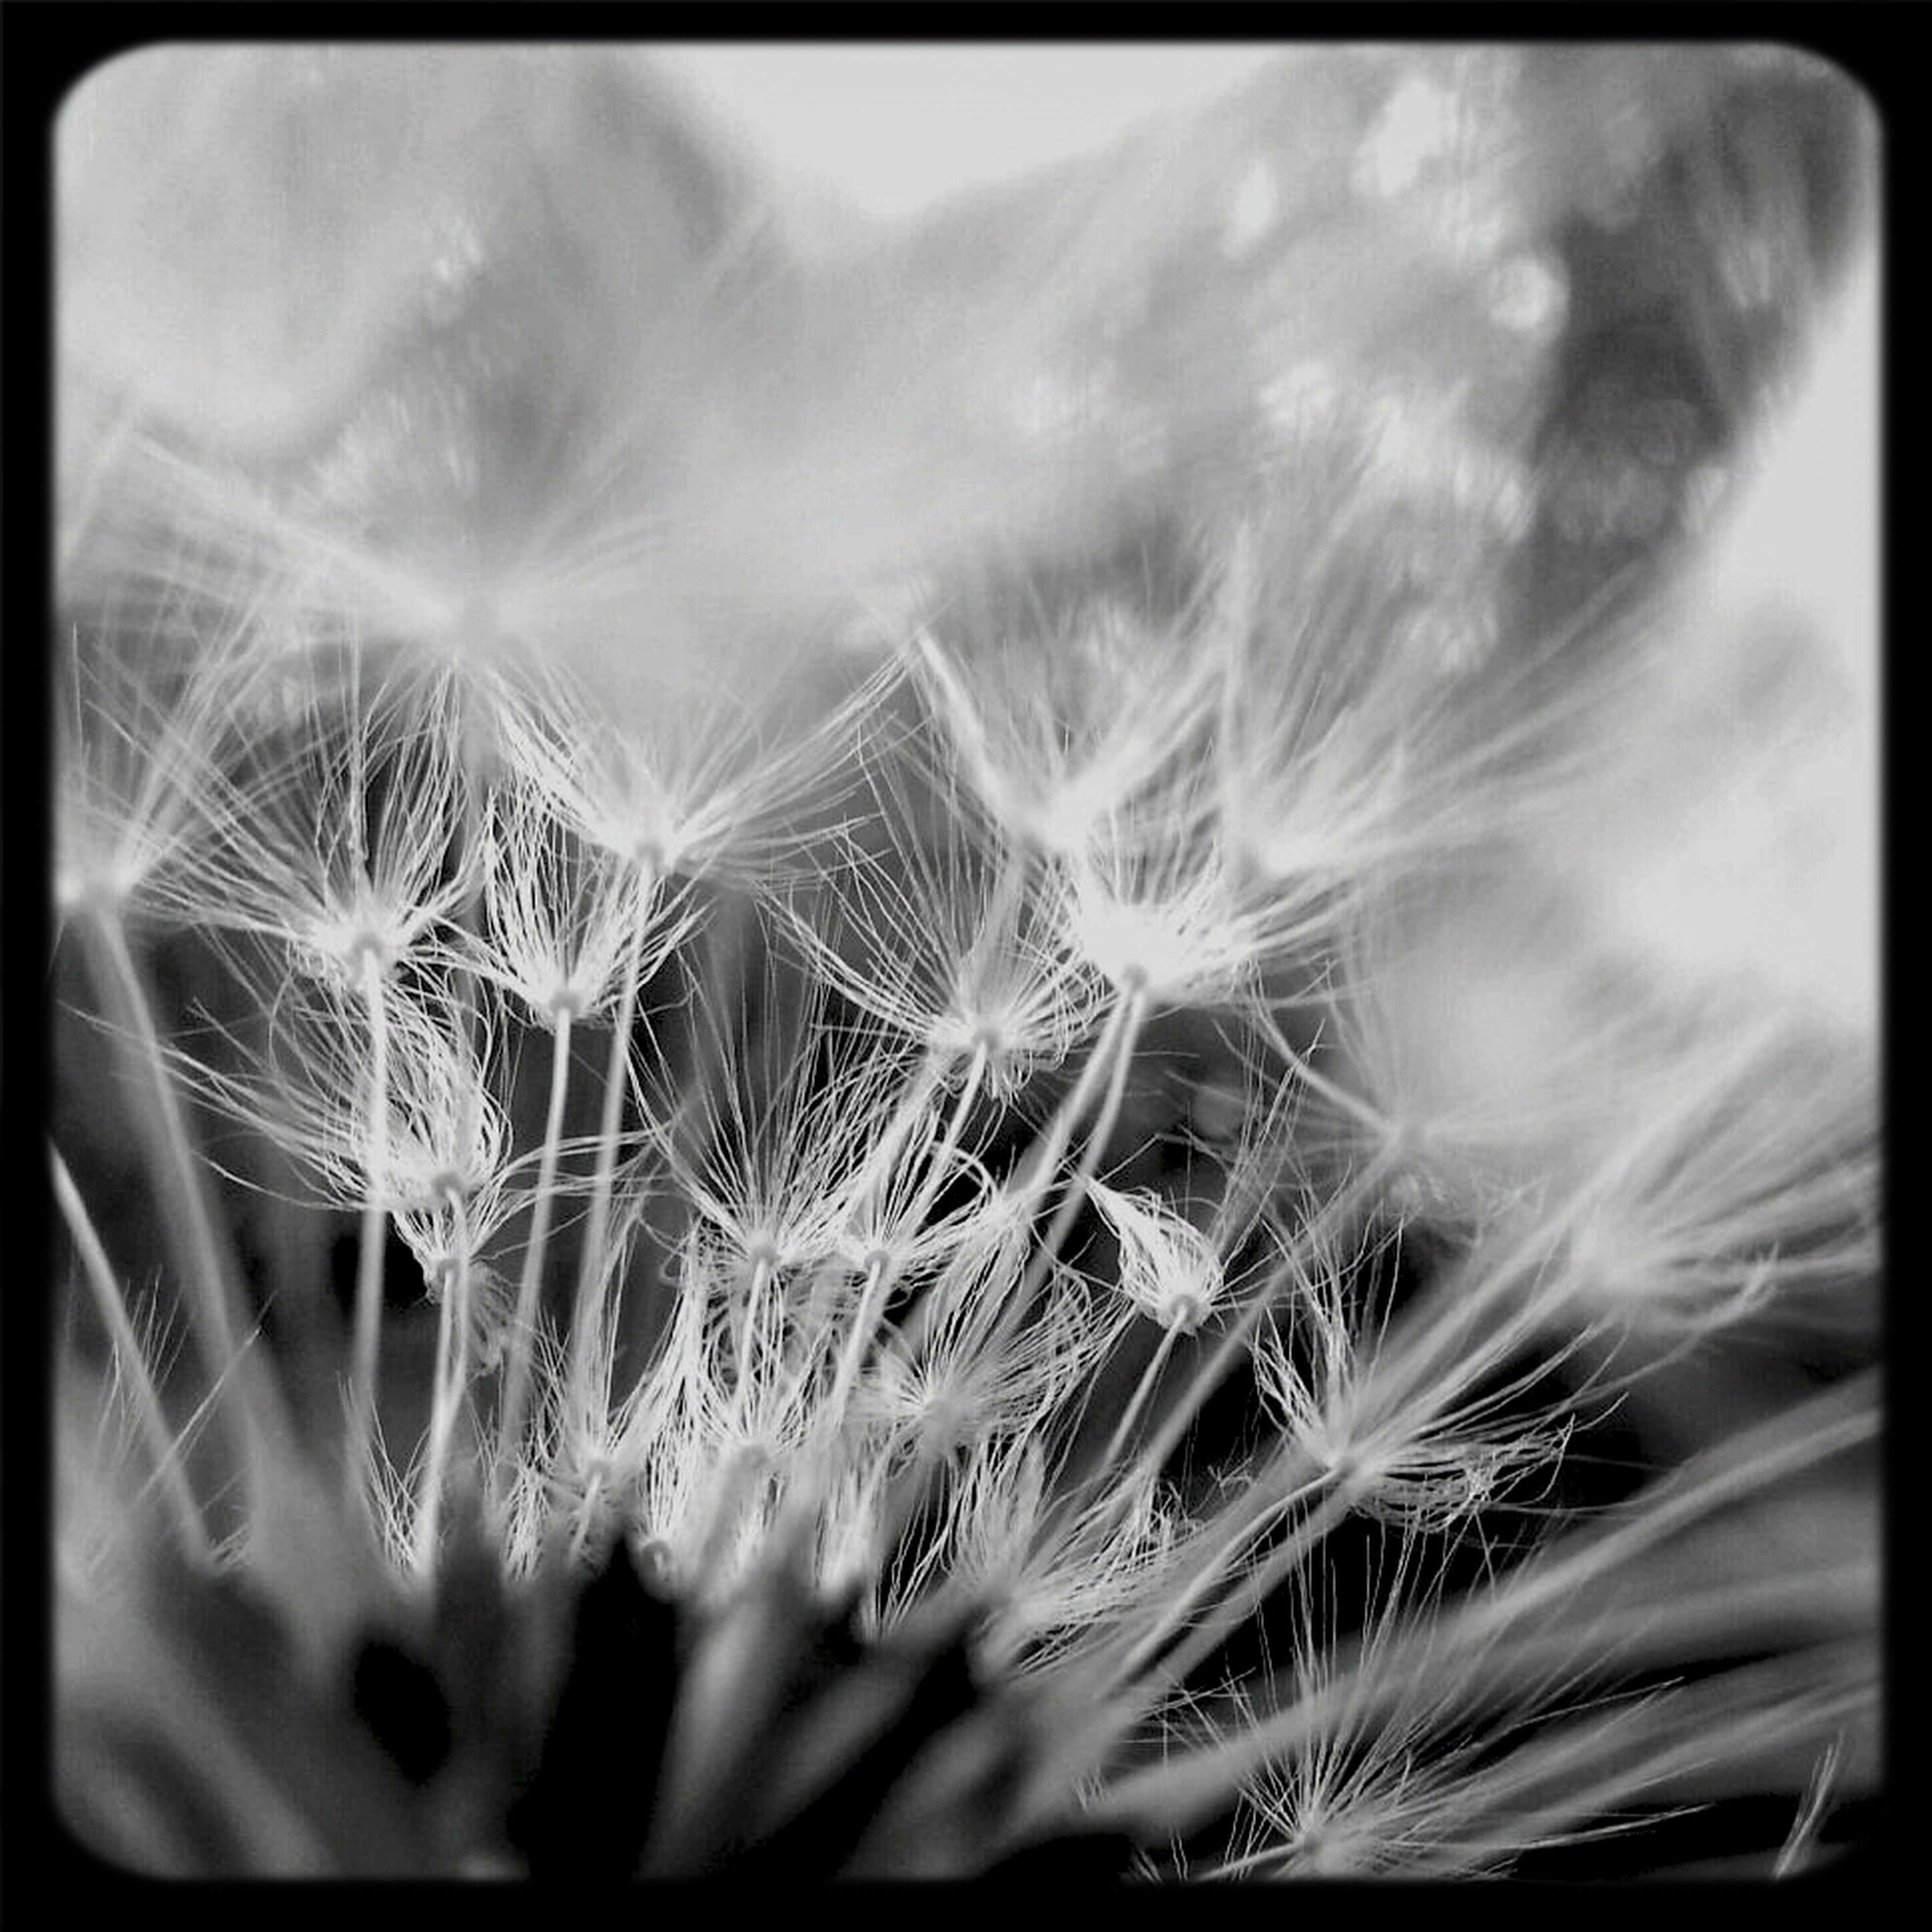 flower, growth, dandelion, close-up, freshness, fragility, auto post production filter, nature, flower head, plant, selective focus, beauty in nature, transfer print, softness, focus on foreground, day, no people, single flower, outdoors, stem